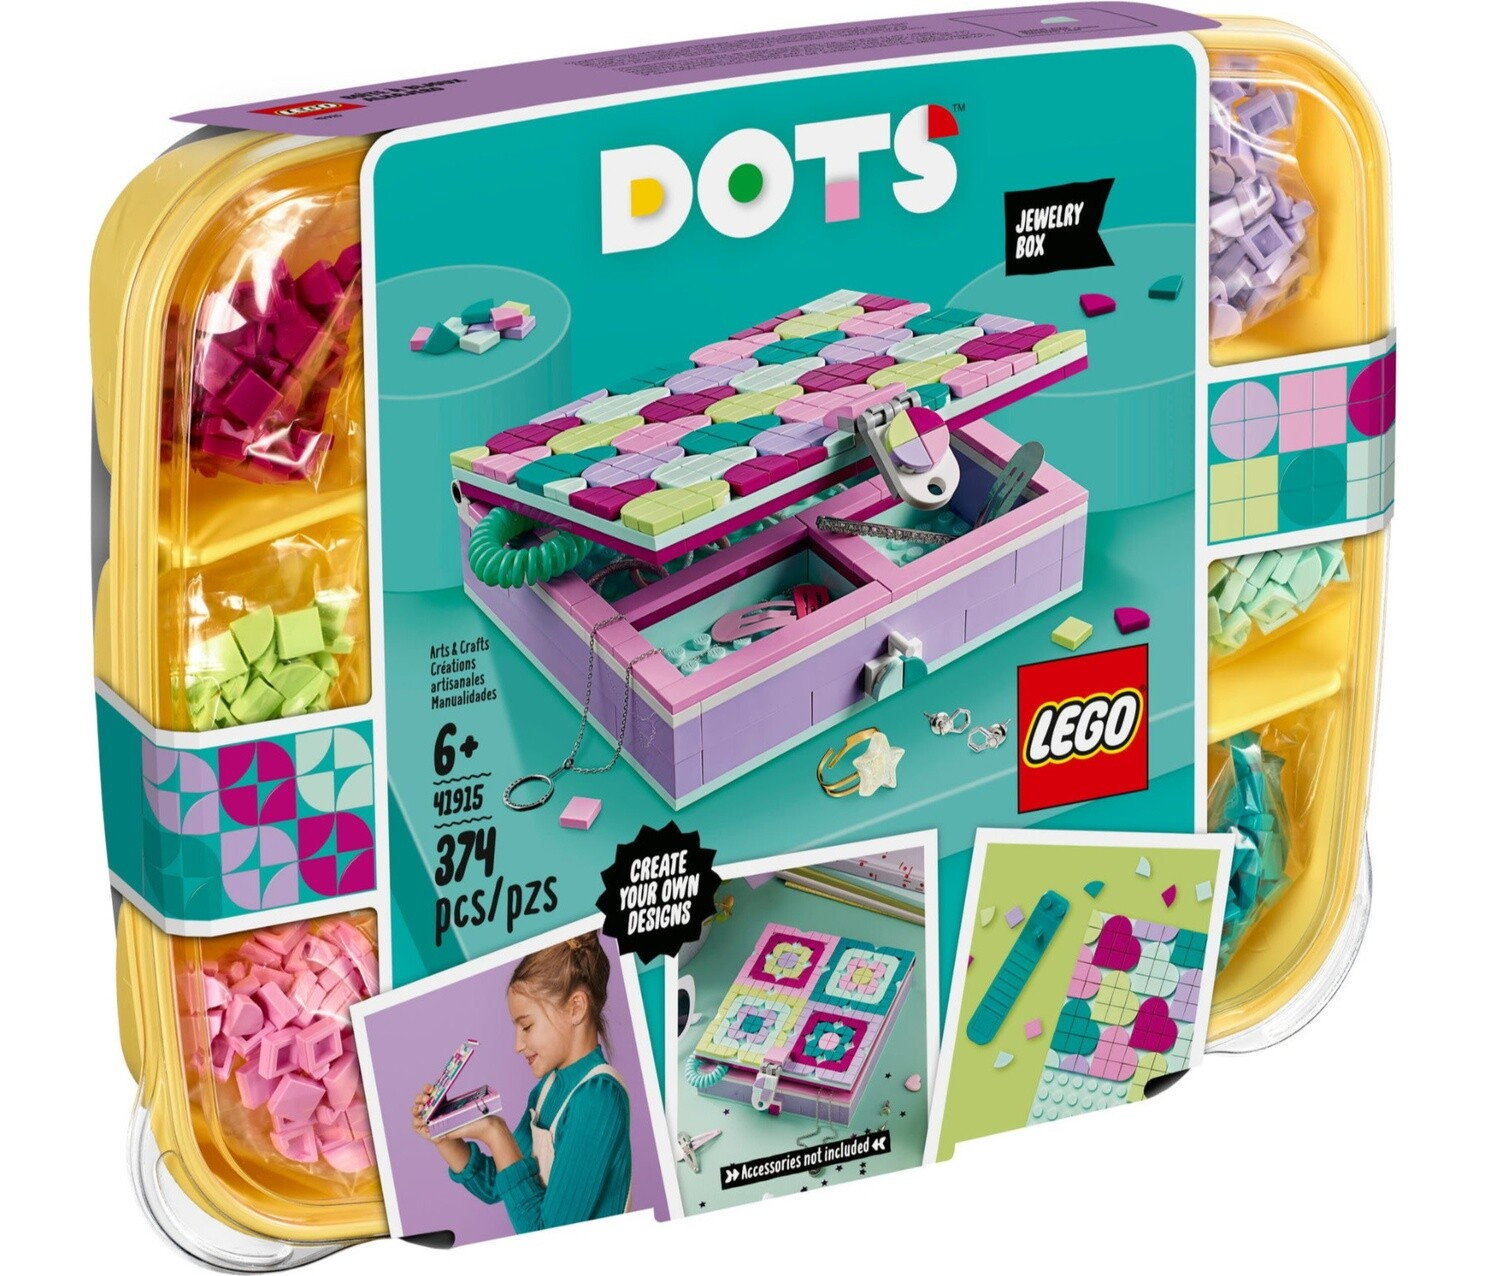 Lego Dots for homeless child